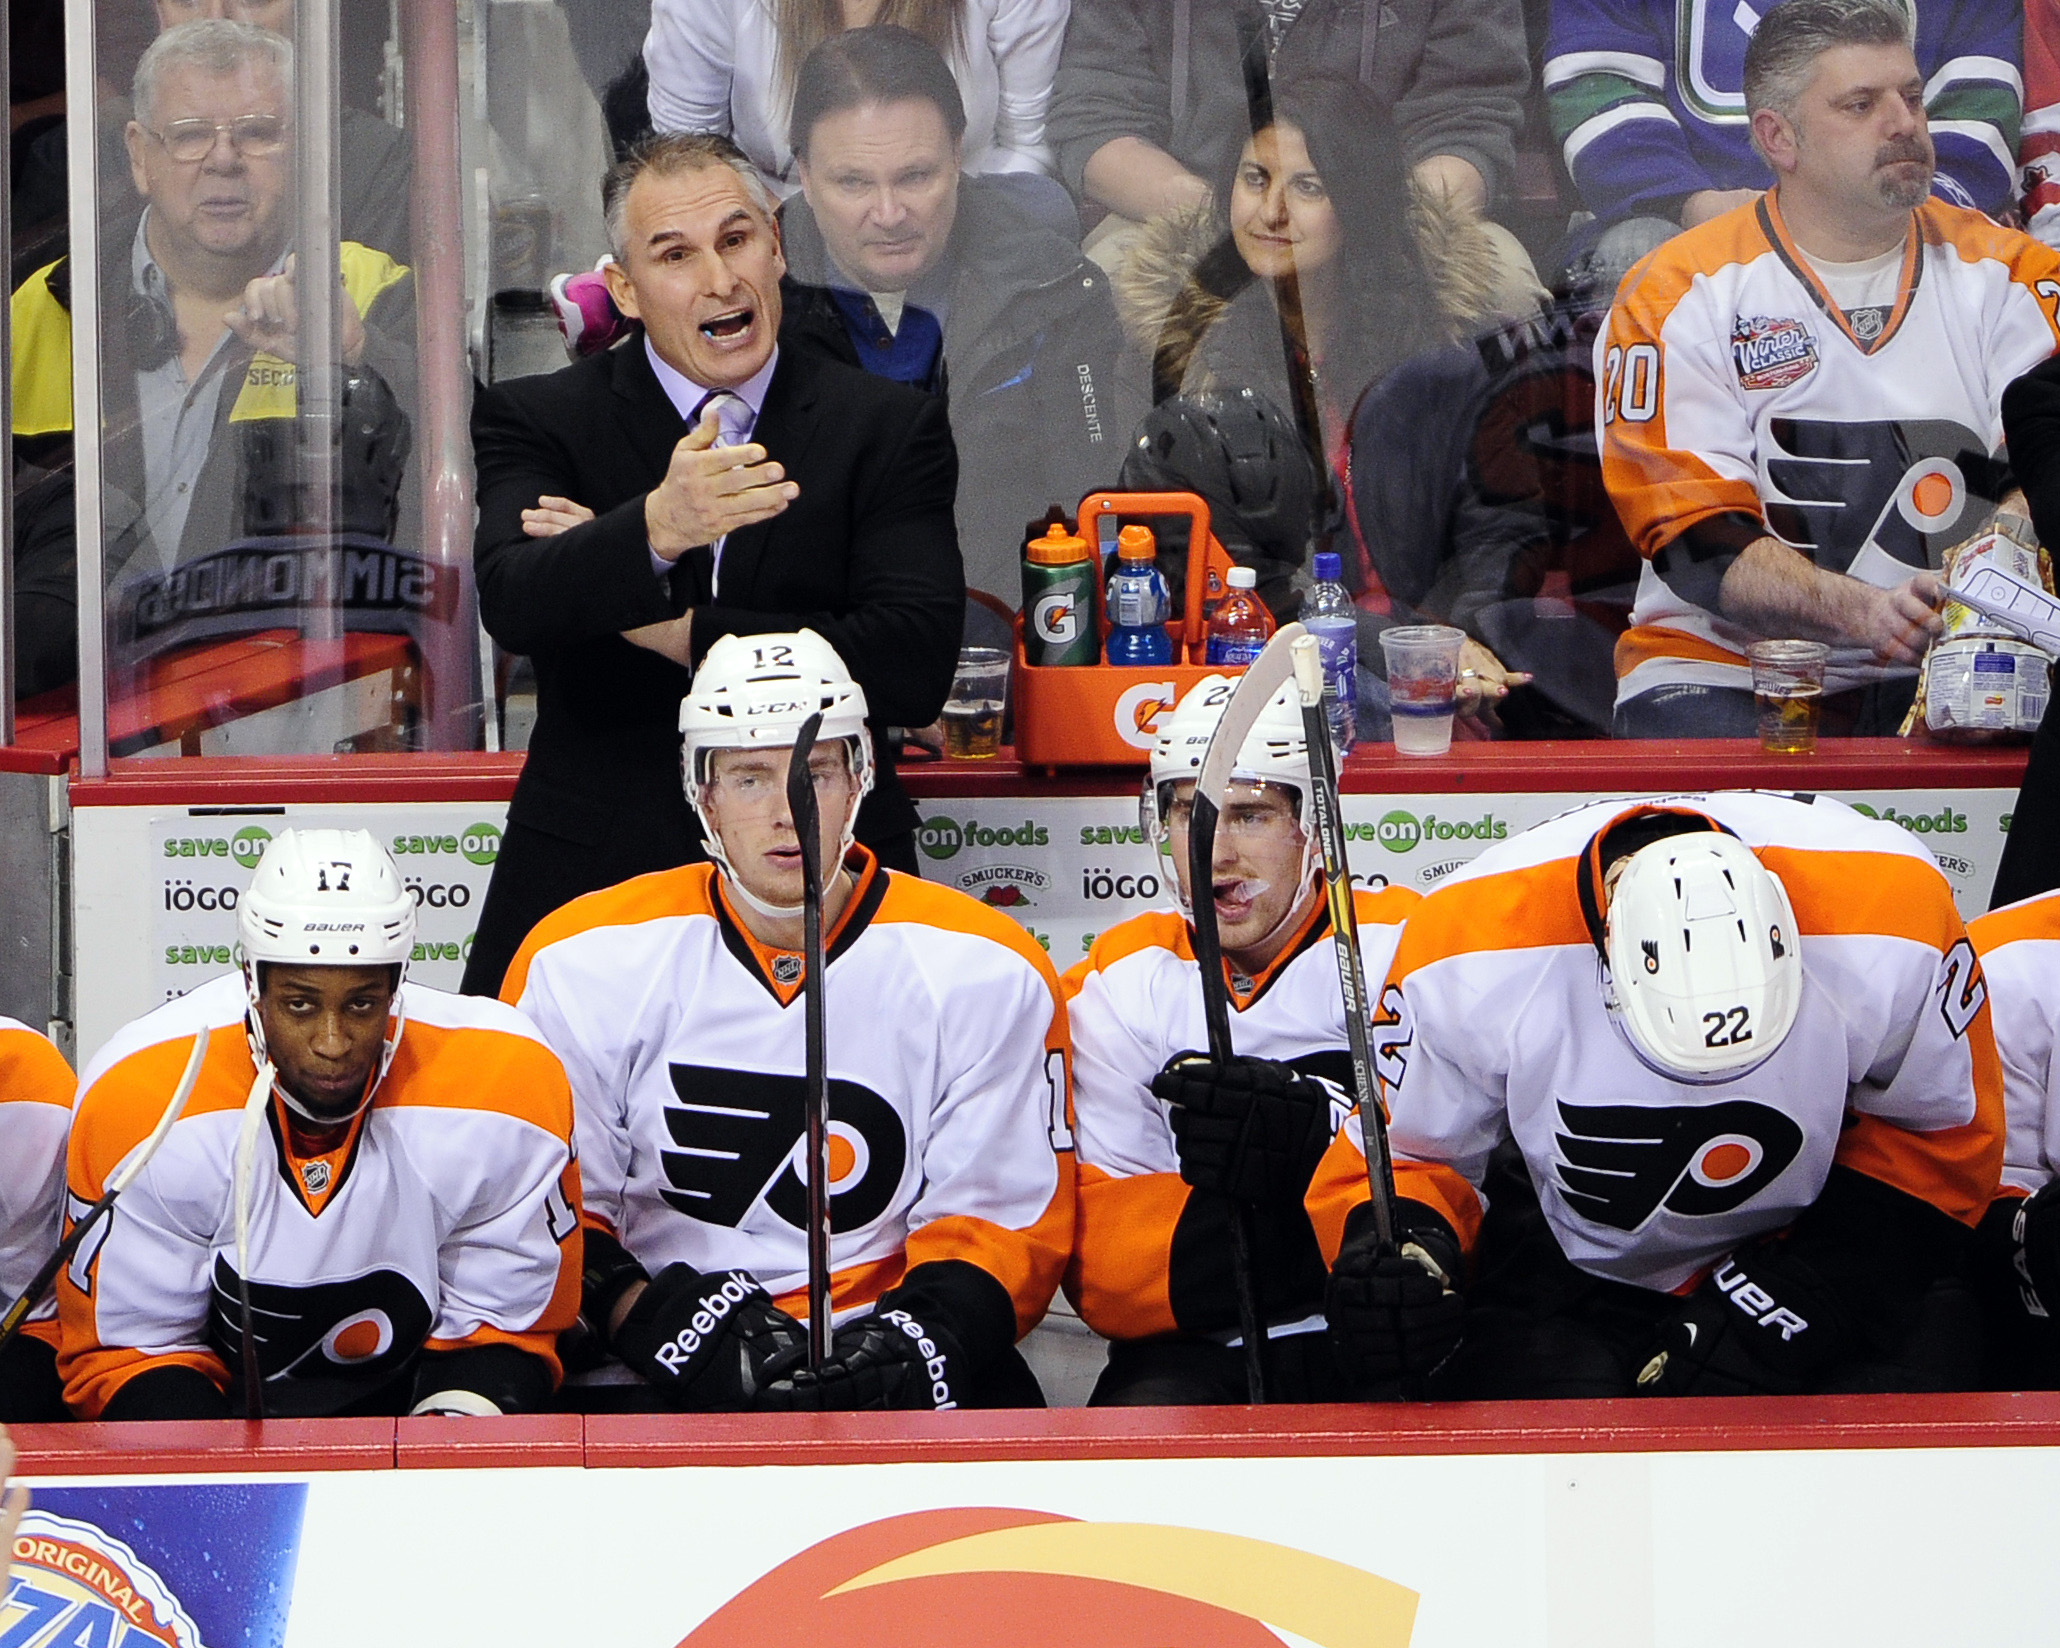 7643762-nhl-philadelphia-flyers-at-vancouver-canucks